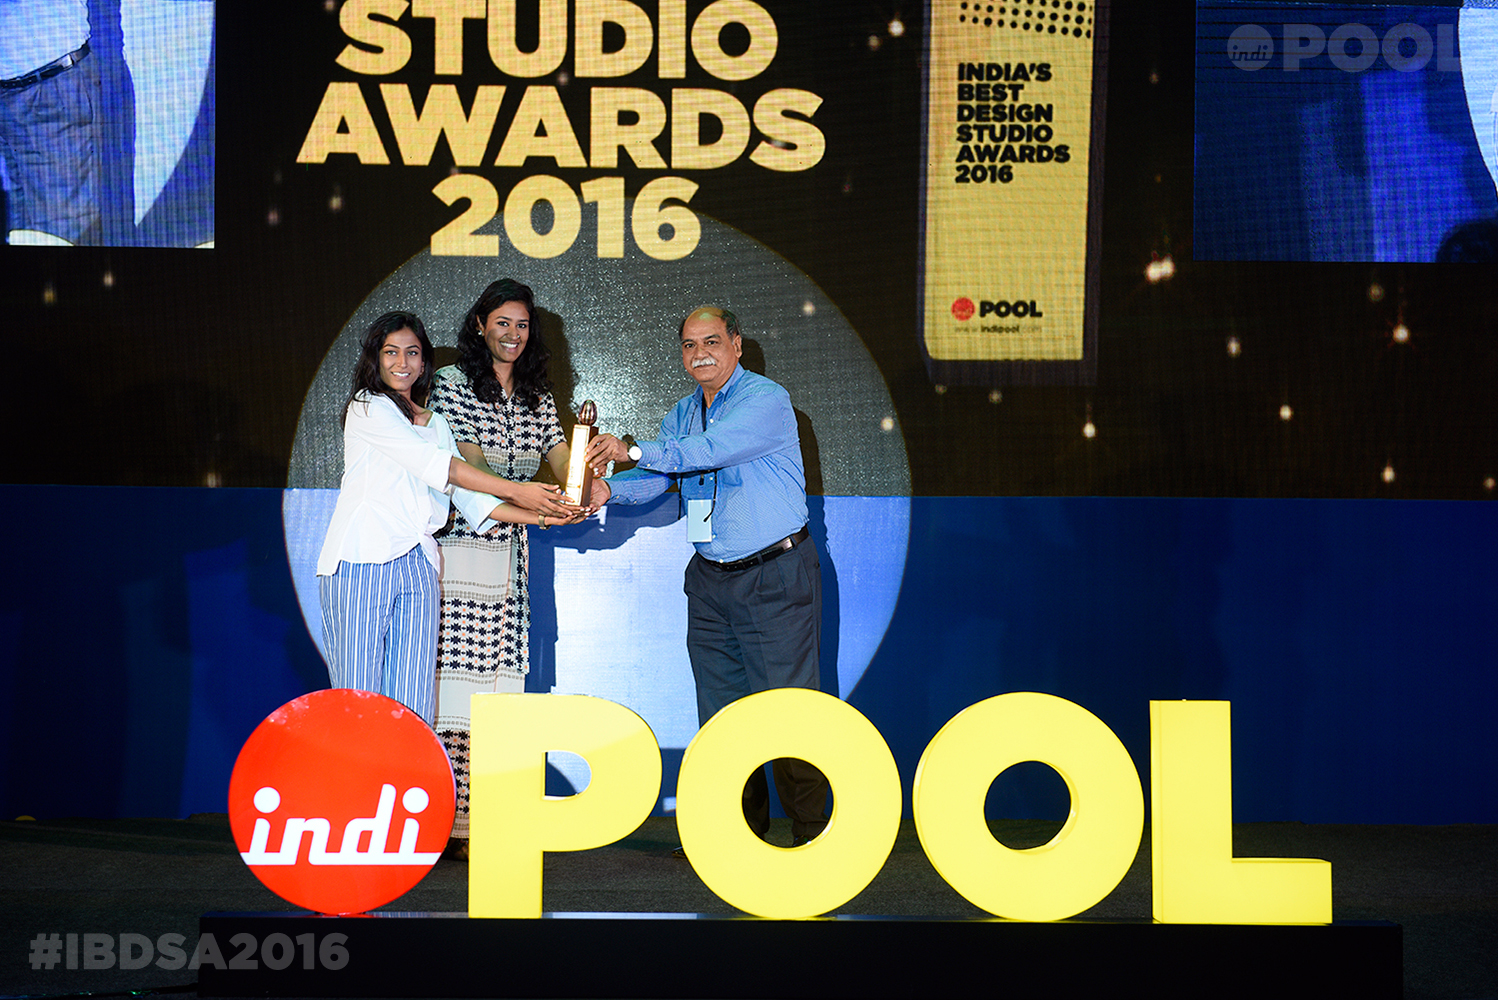 India's Best Young Design Studio 2016 - Studio Wood